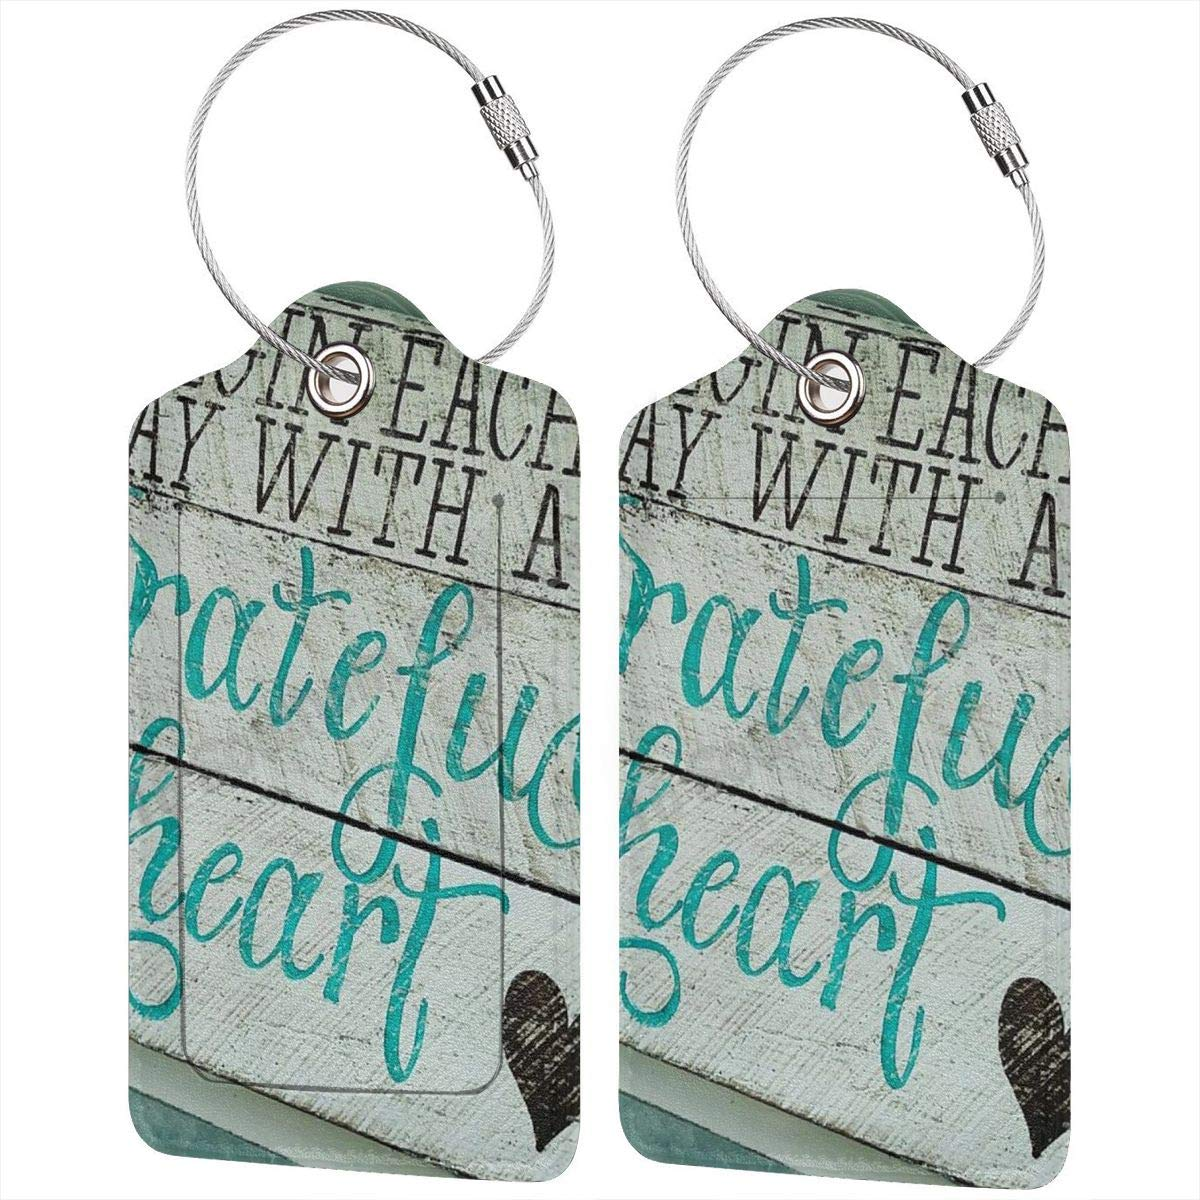 Leather Luggage Tag Begin Each Day With A Grateful Heart Quotes Luggage Tags For Suitcase Travel Lover Gifts For Men Women 4 PCS